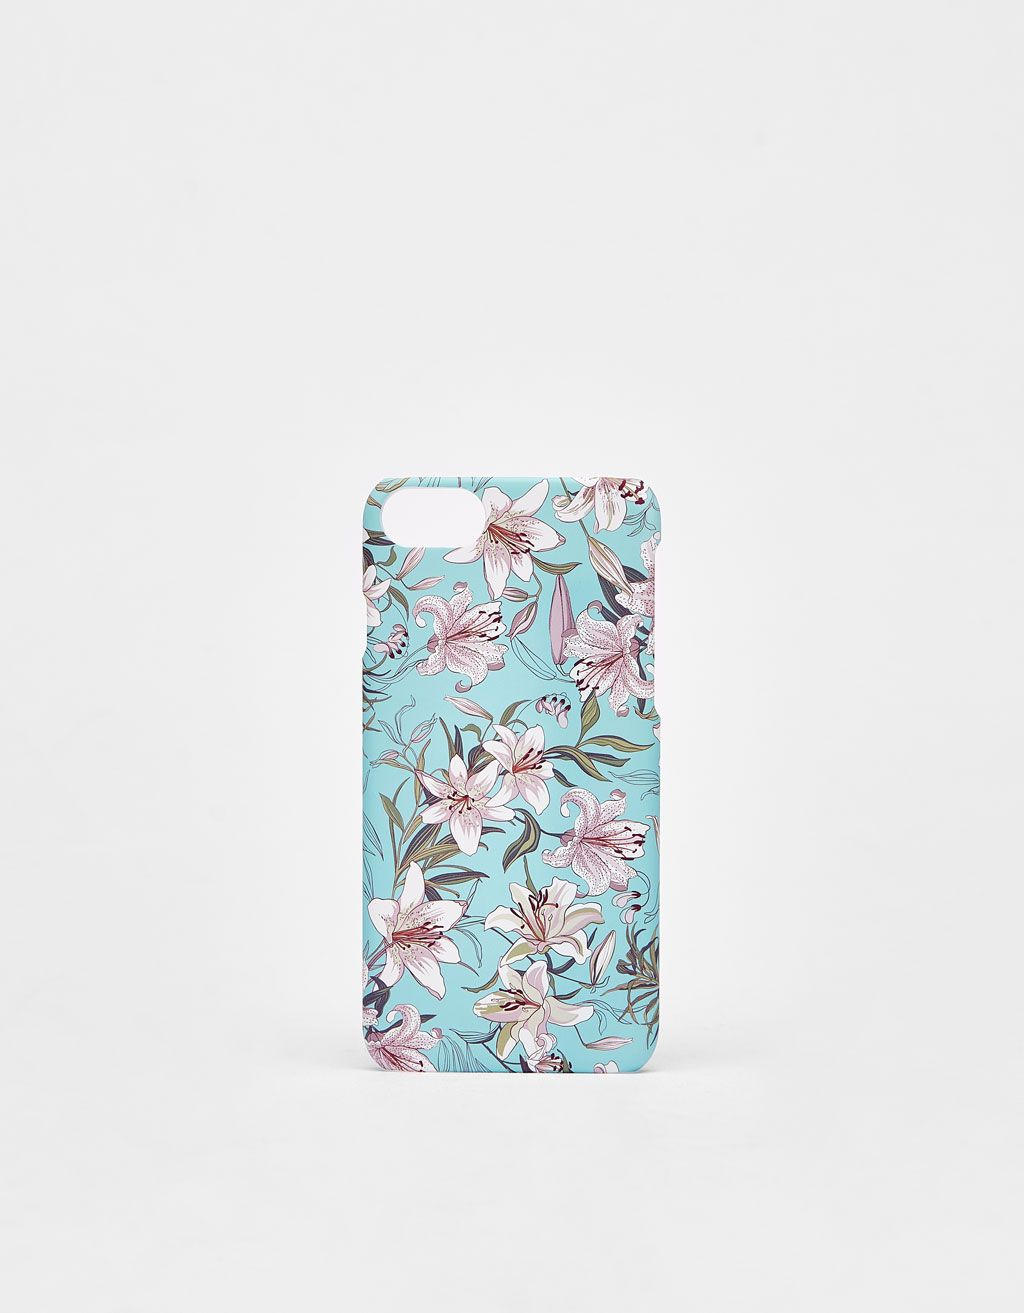 f35f2e5da8d Accesorios Bershka, Fundas Para Iphone, Fundas Moviles, Mujeres, Iphone 8  Plus,